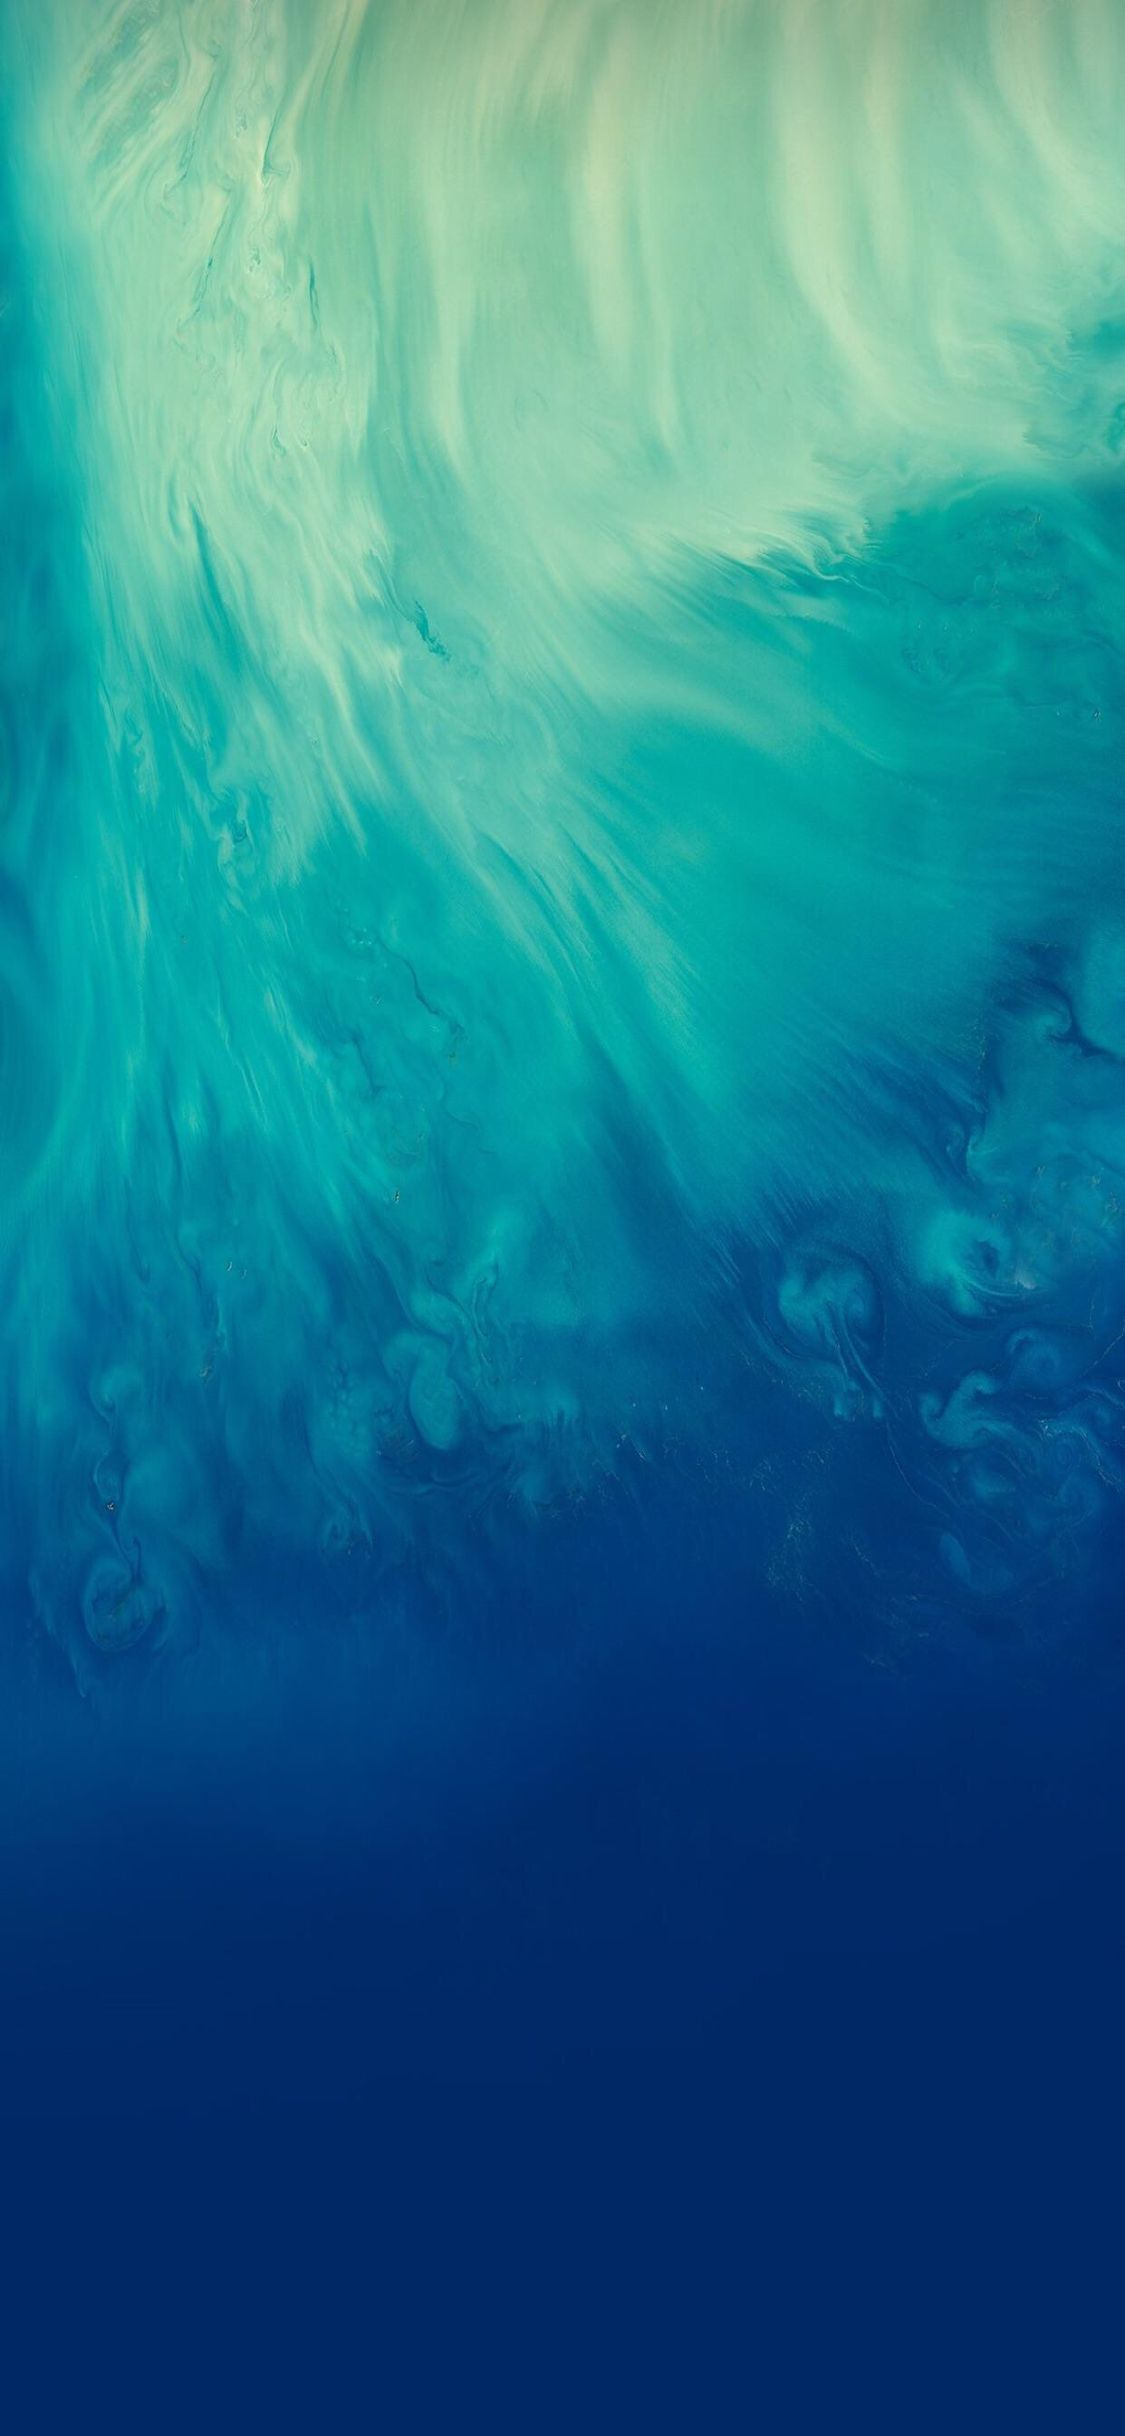 iOS 11, iPhone X, Aqua, blue, Water, underwater, abstract